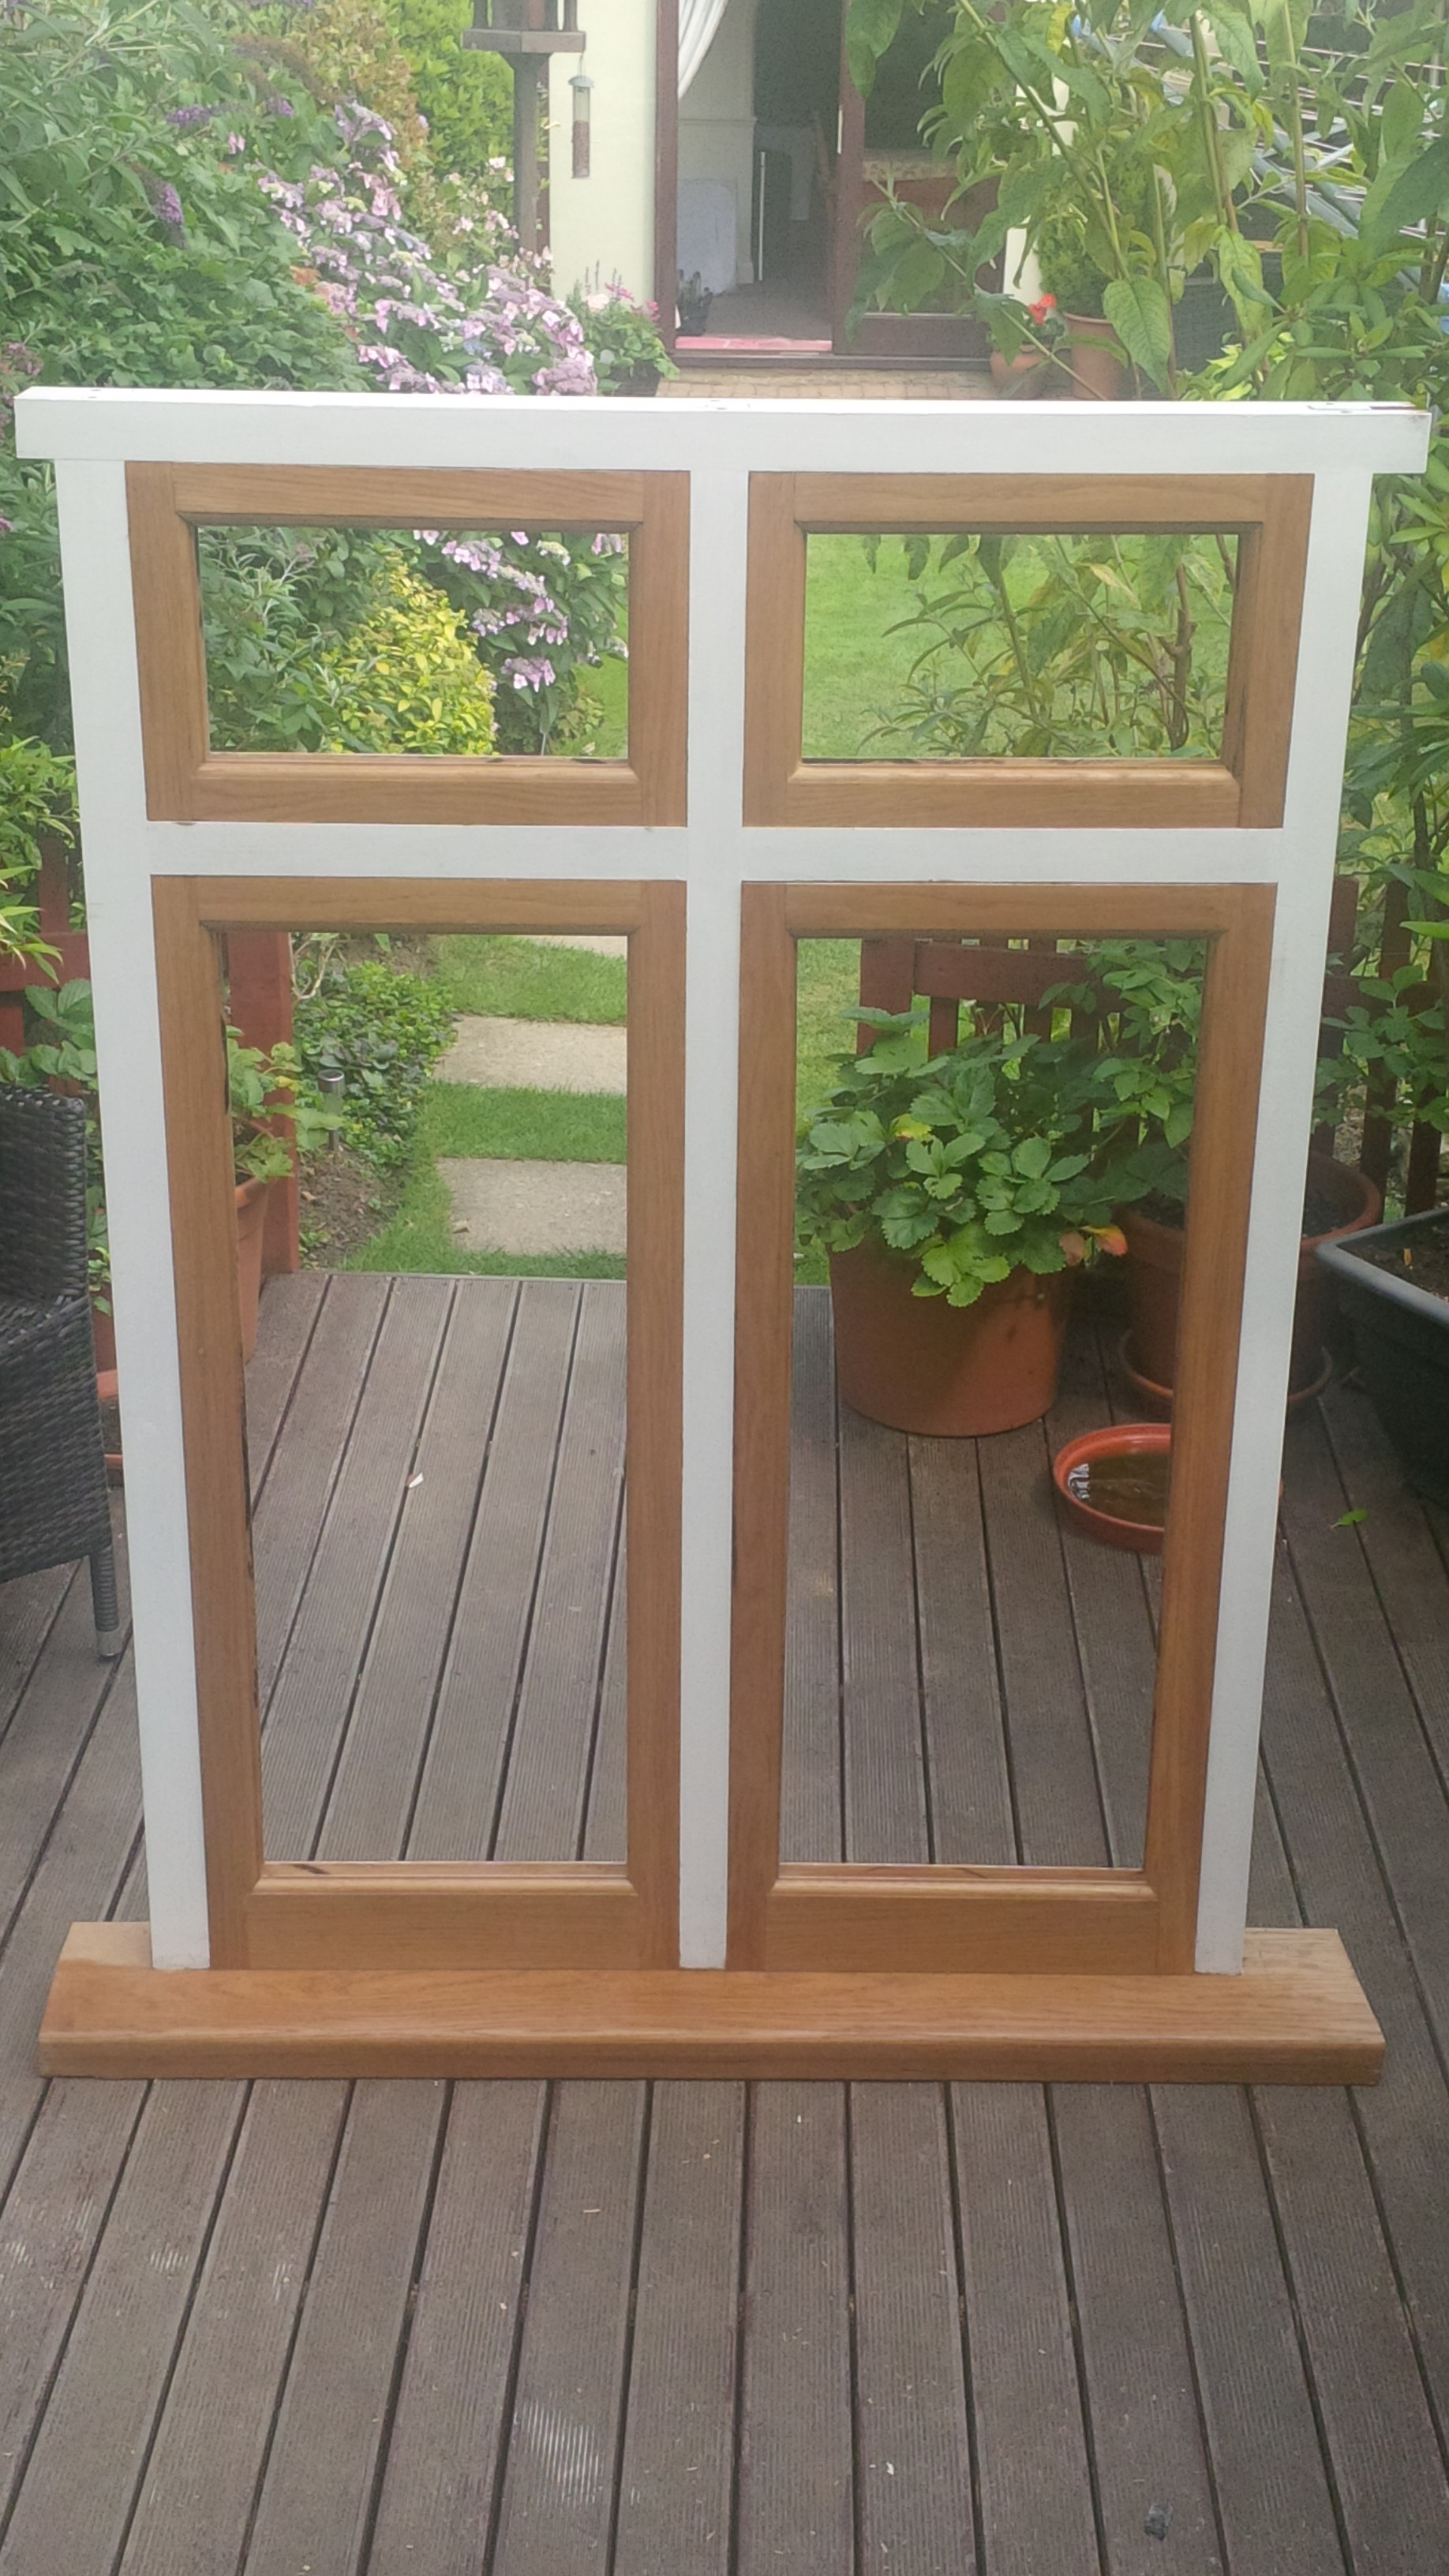 Solid Painted Sapele Hardwood Frames with American white oak fixed double glazed casement windows. & Bespoke solid oak door and entrance | Surrey Joinery Specialists ...